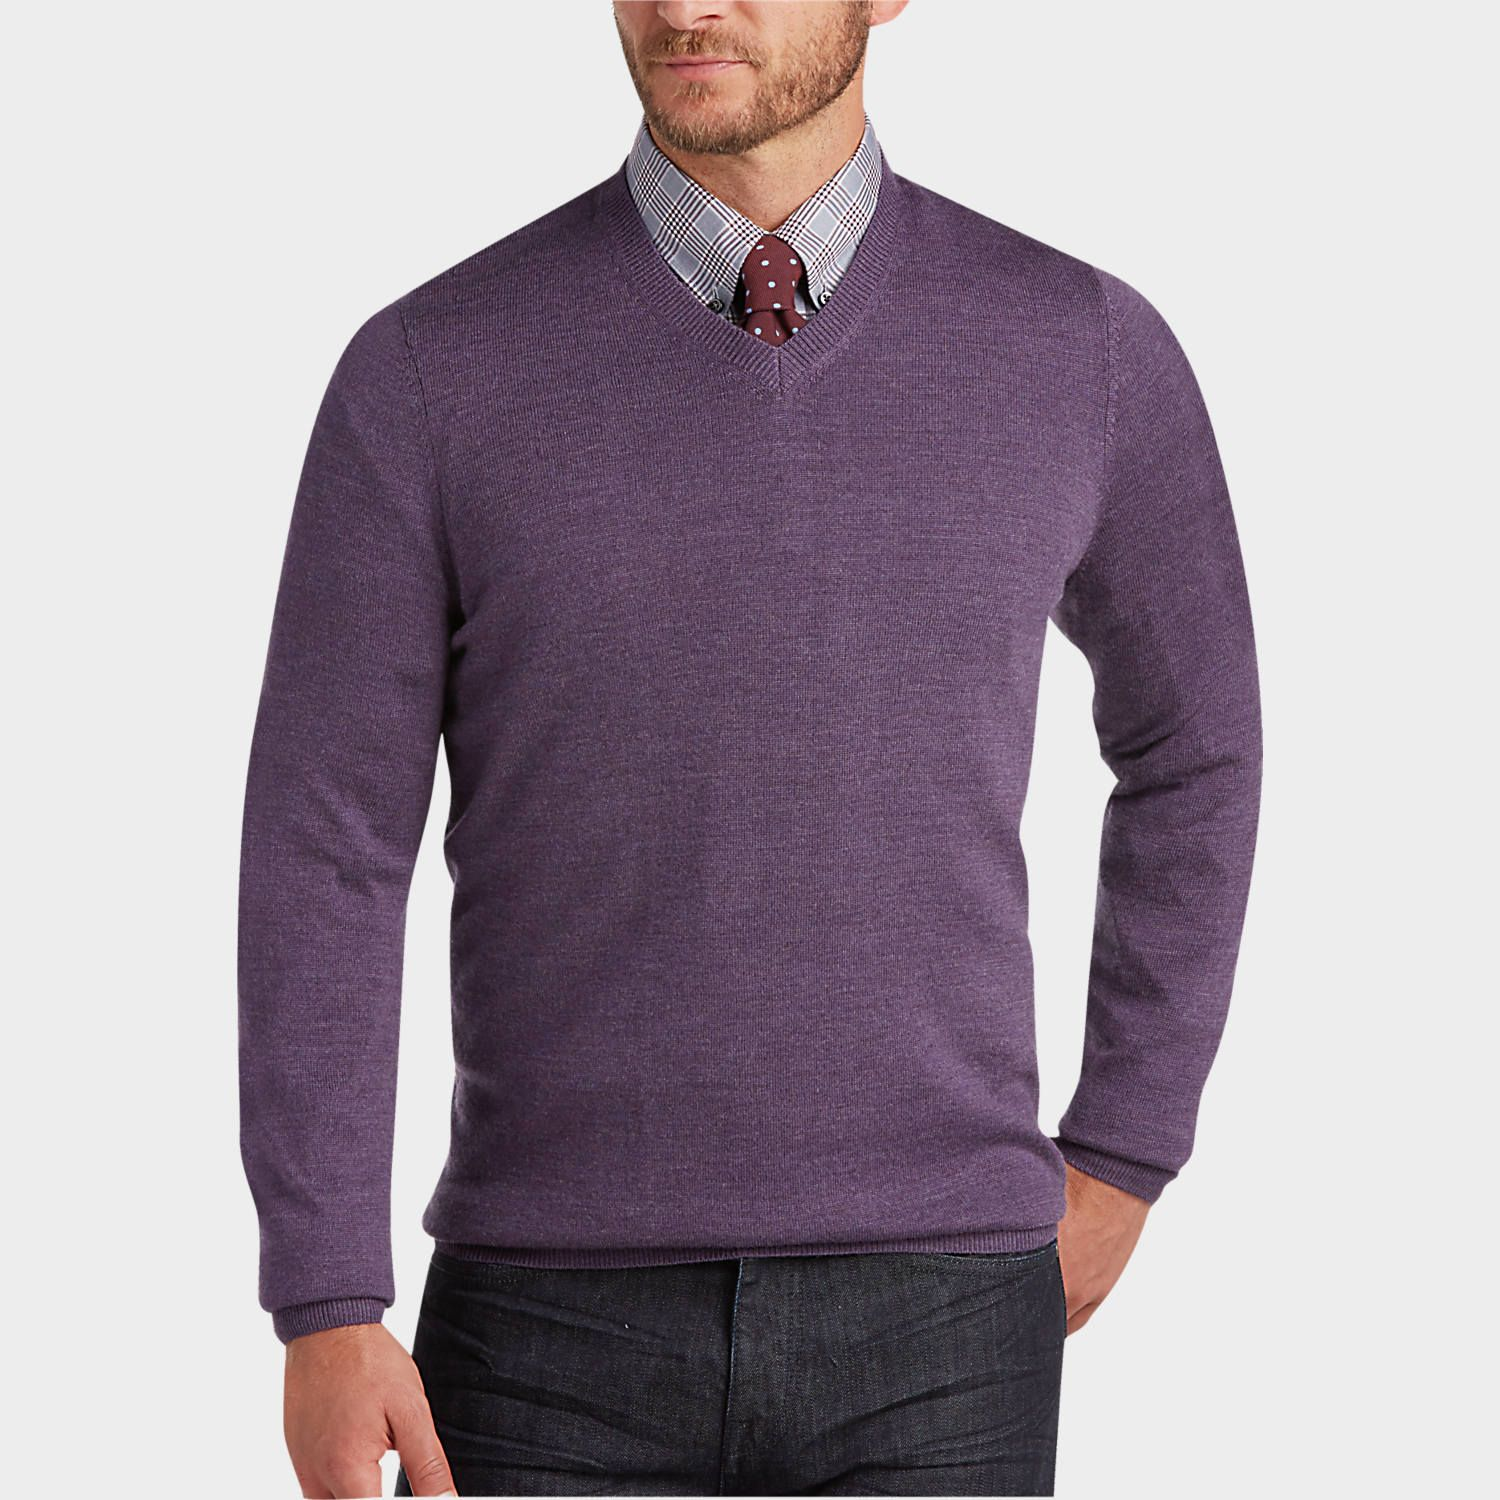 7b3880790c02 Buy a Joseph Abboud Scarlet V-Neck Merino Wool Sweater online at Men s  Wearhouse. See the latest styles of men s Sweaters. FREE Shipping on orders   50+.